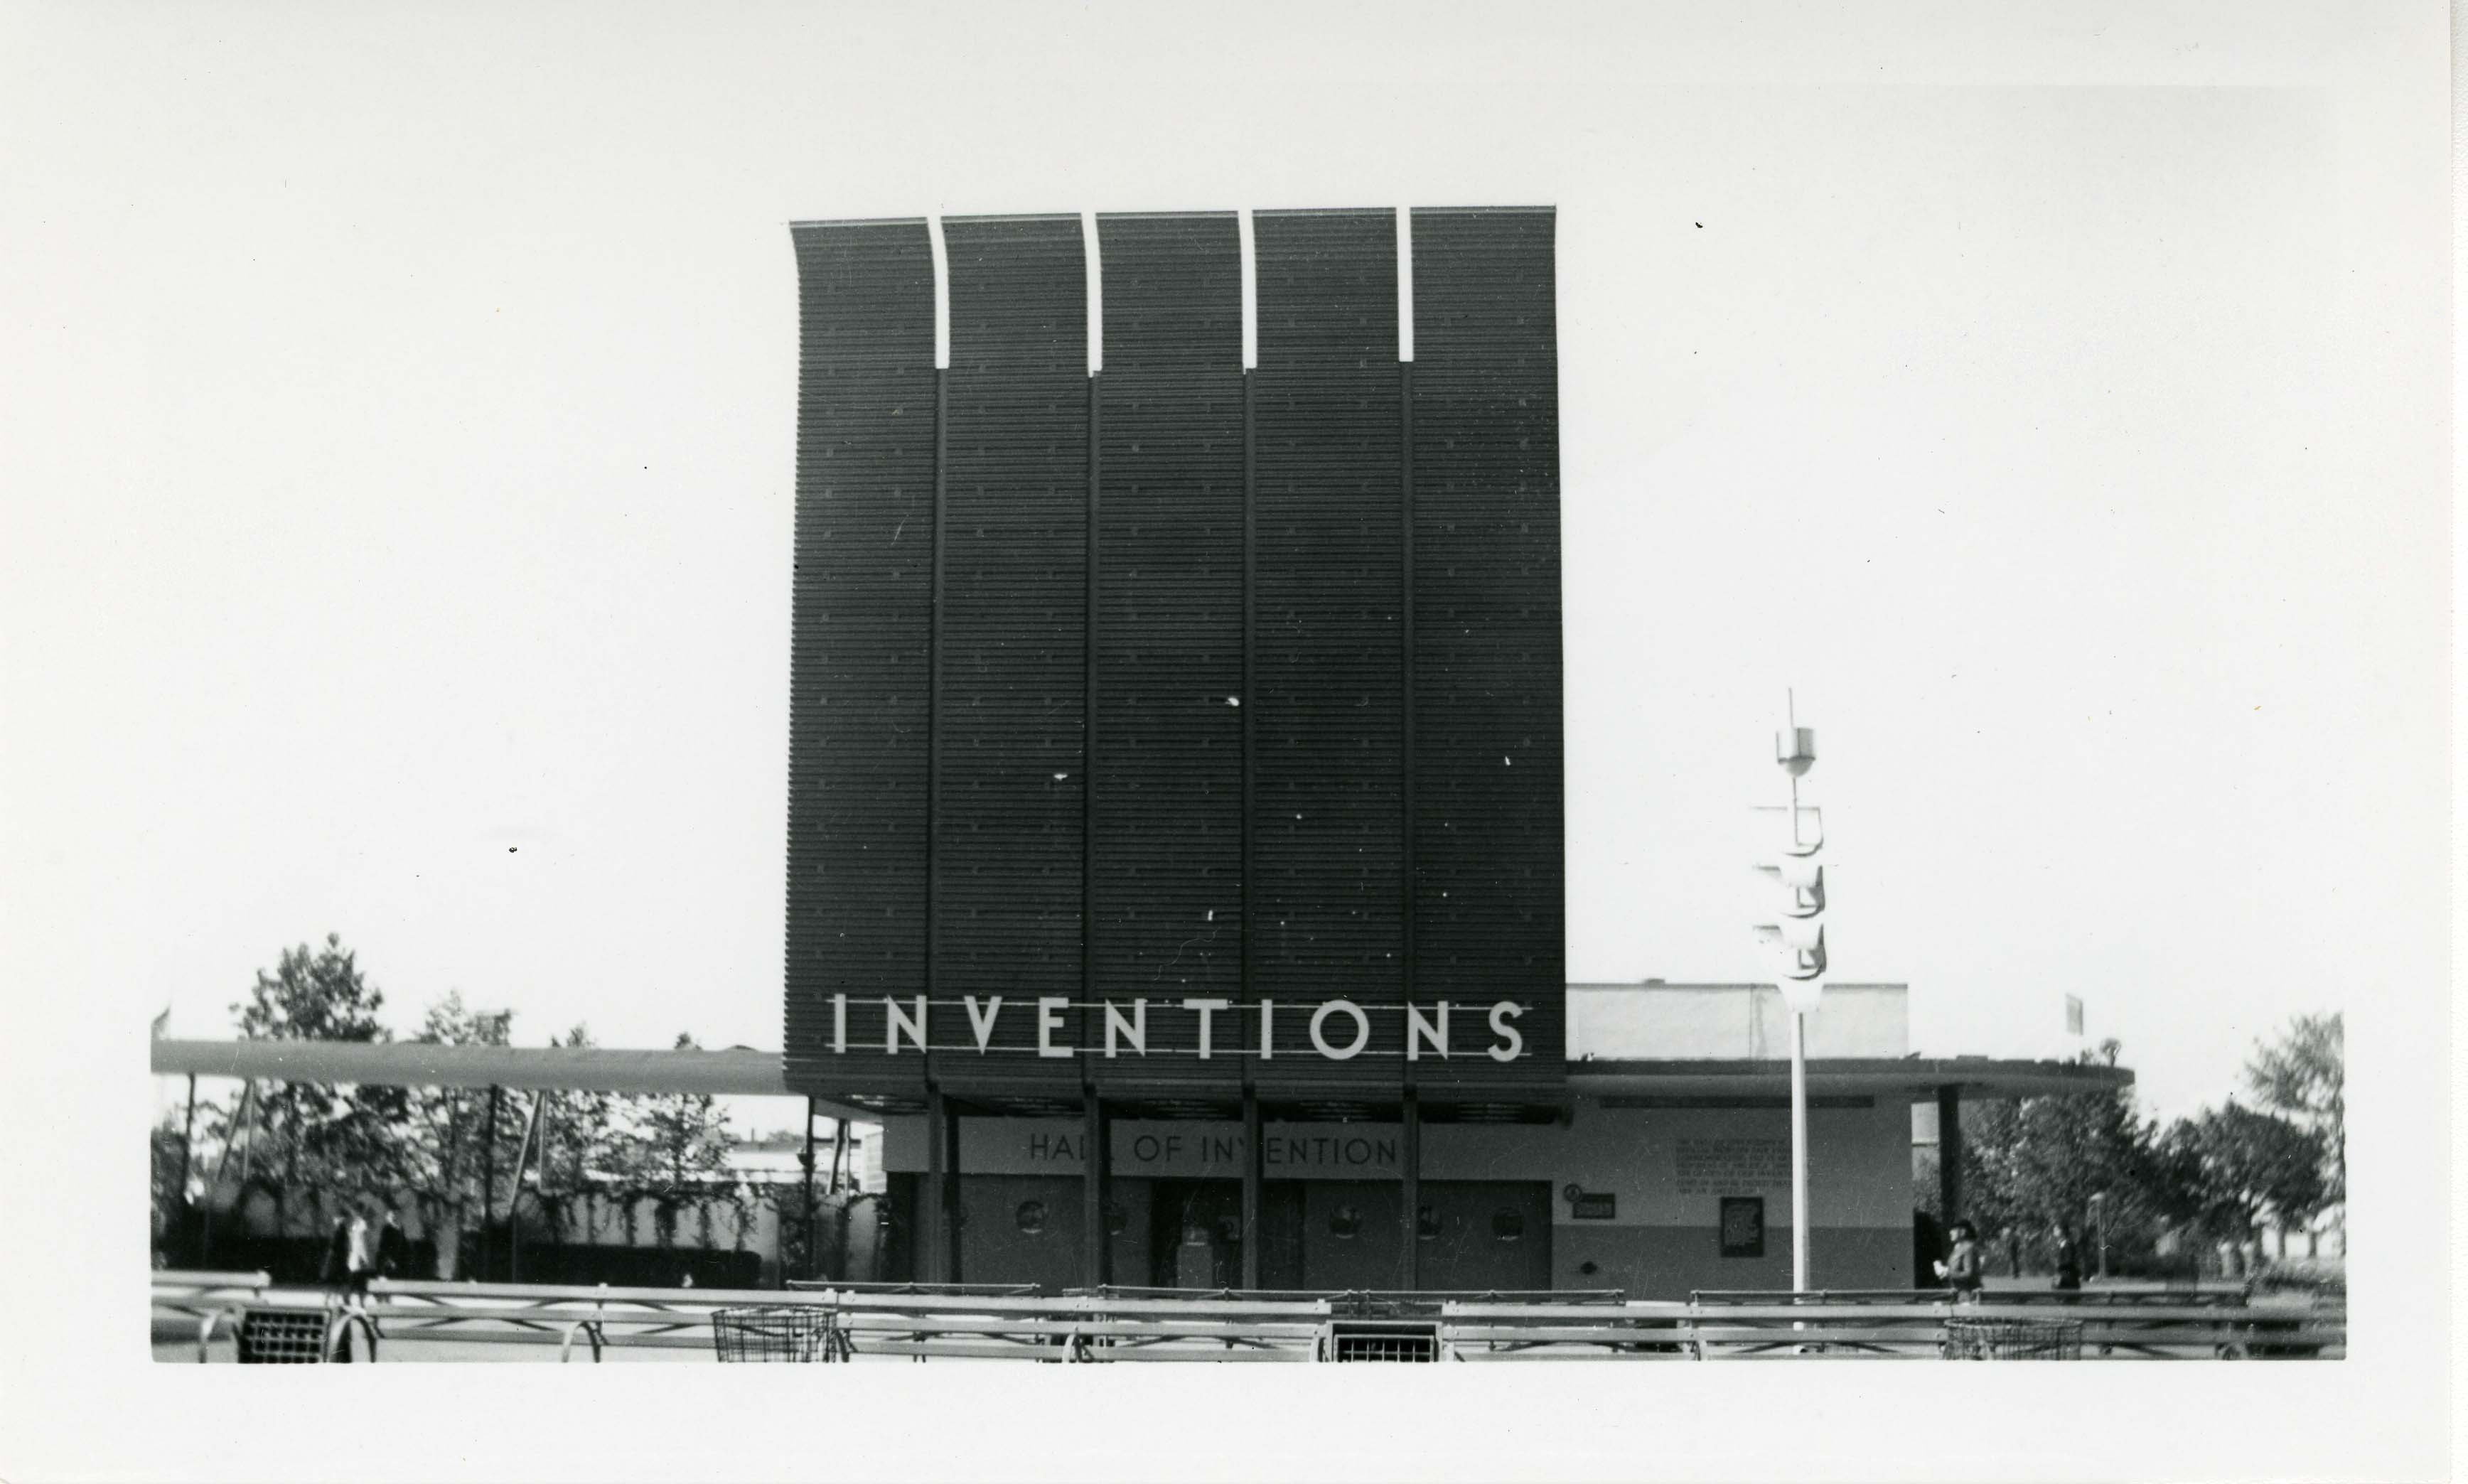 Photograph, Hall of Inventions, New York World's Fair, 1940 (AC0560-0000049)